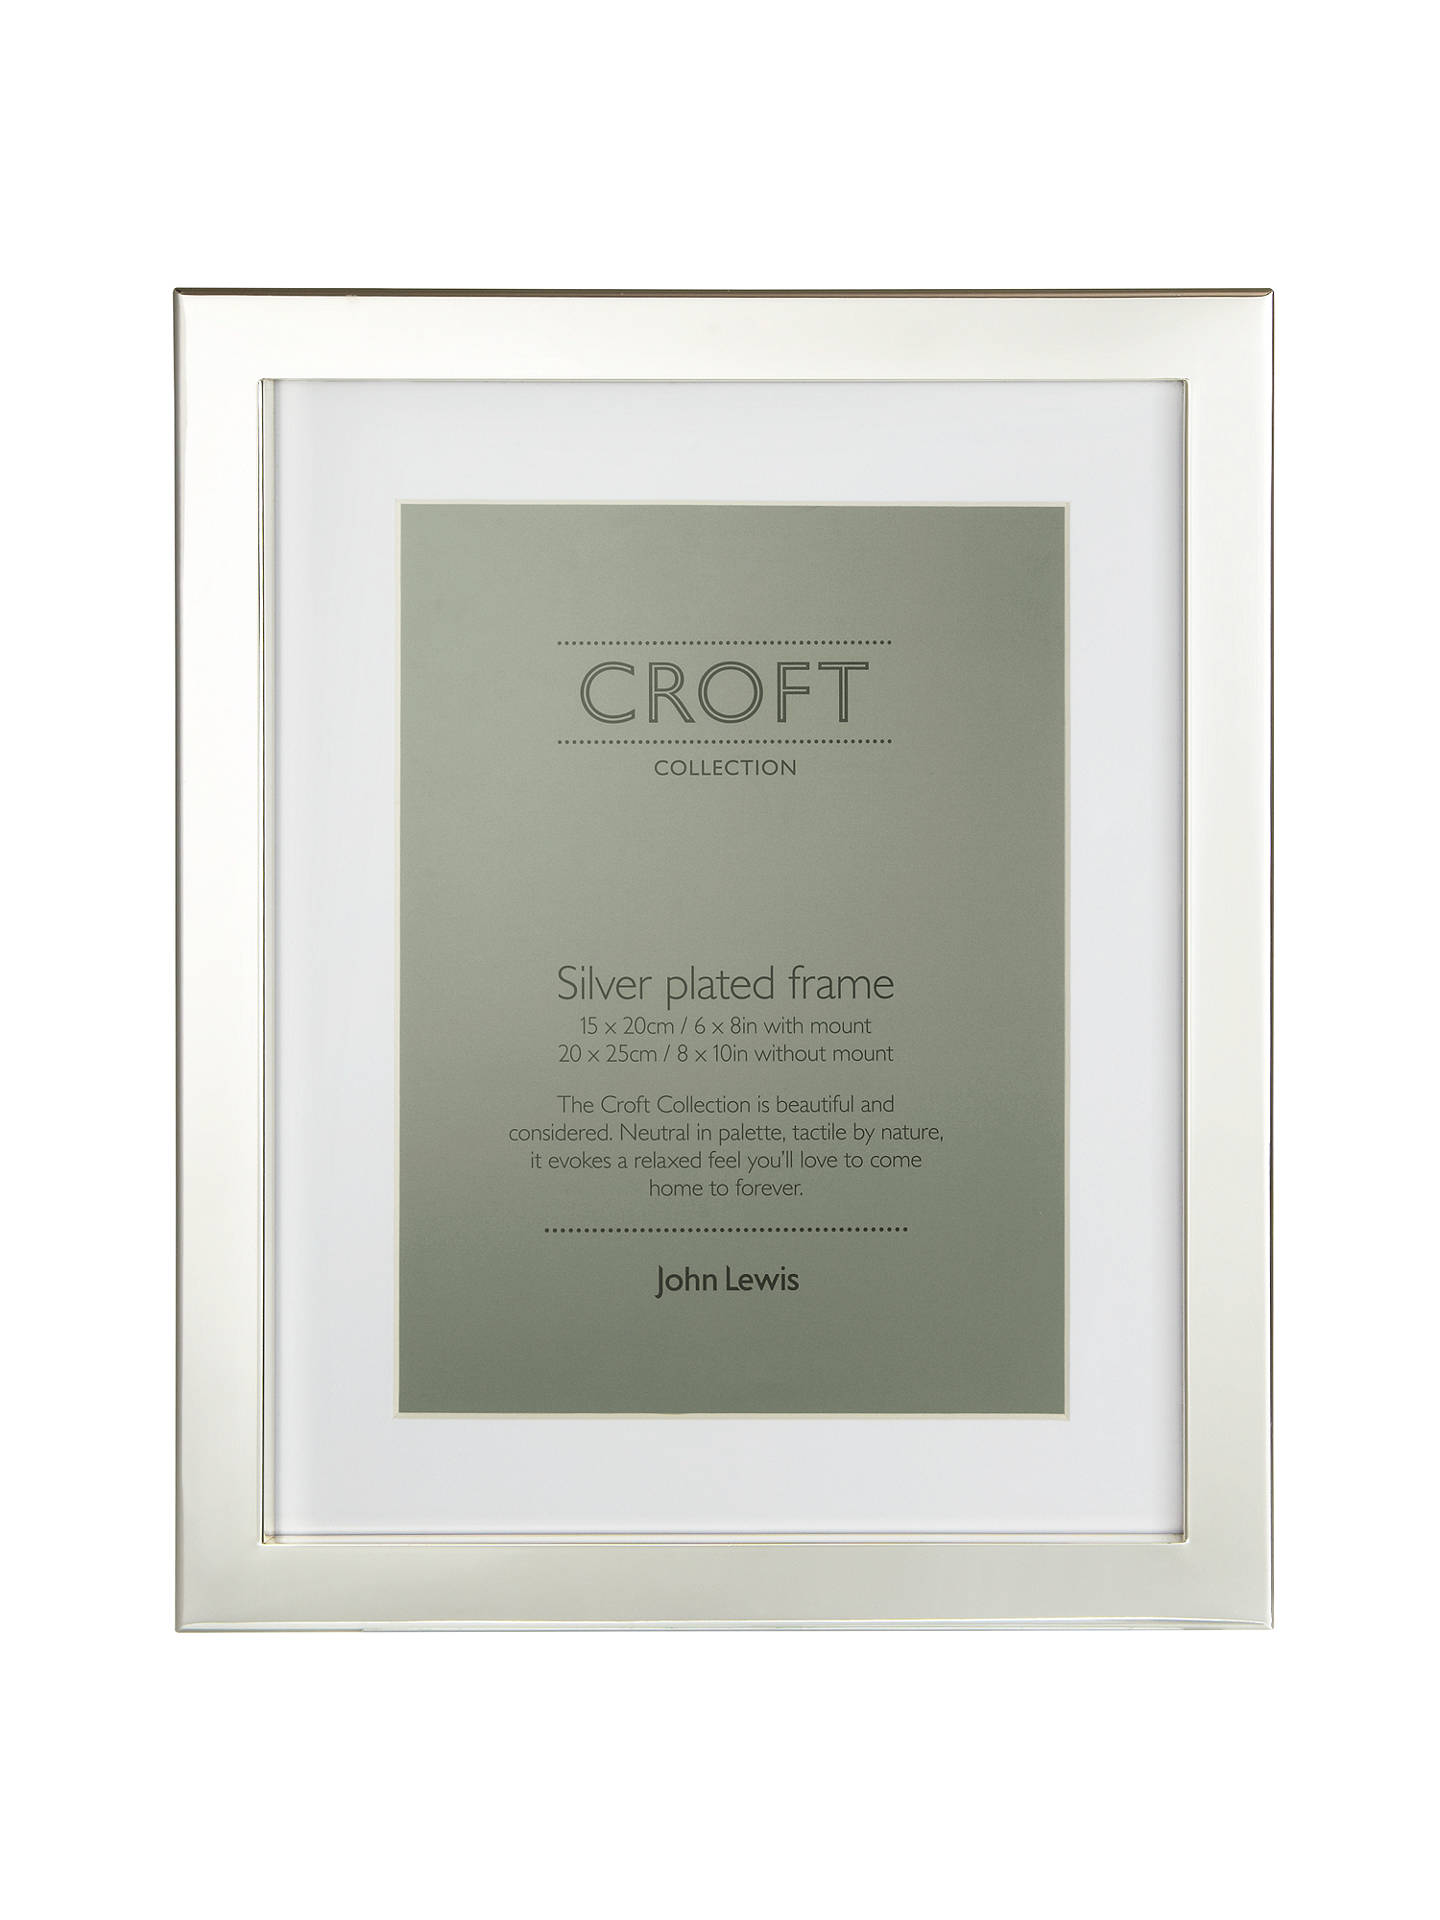 Croft Collection Silver Plated Box Photo Frame 6 X 8 15 X 20cm